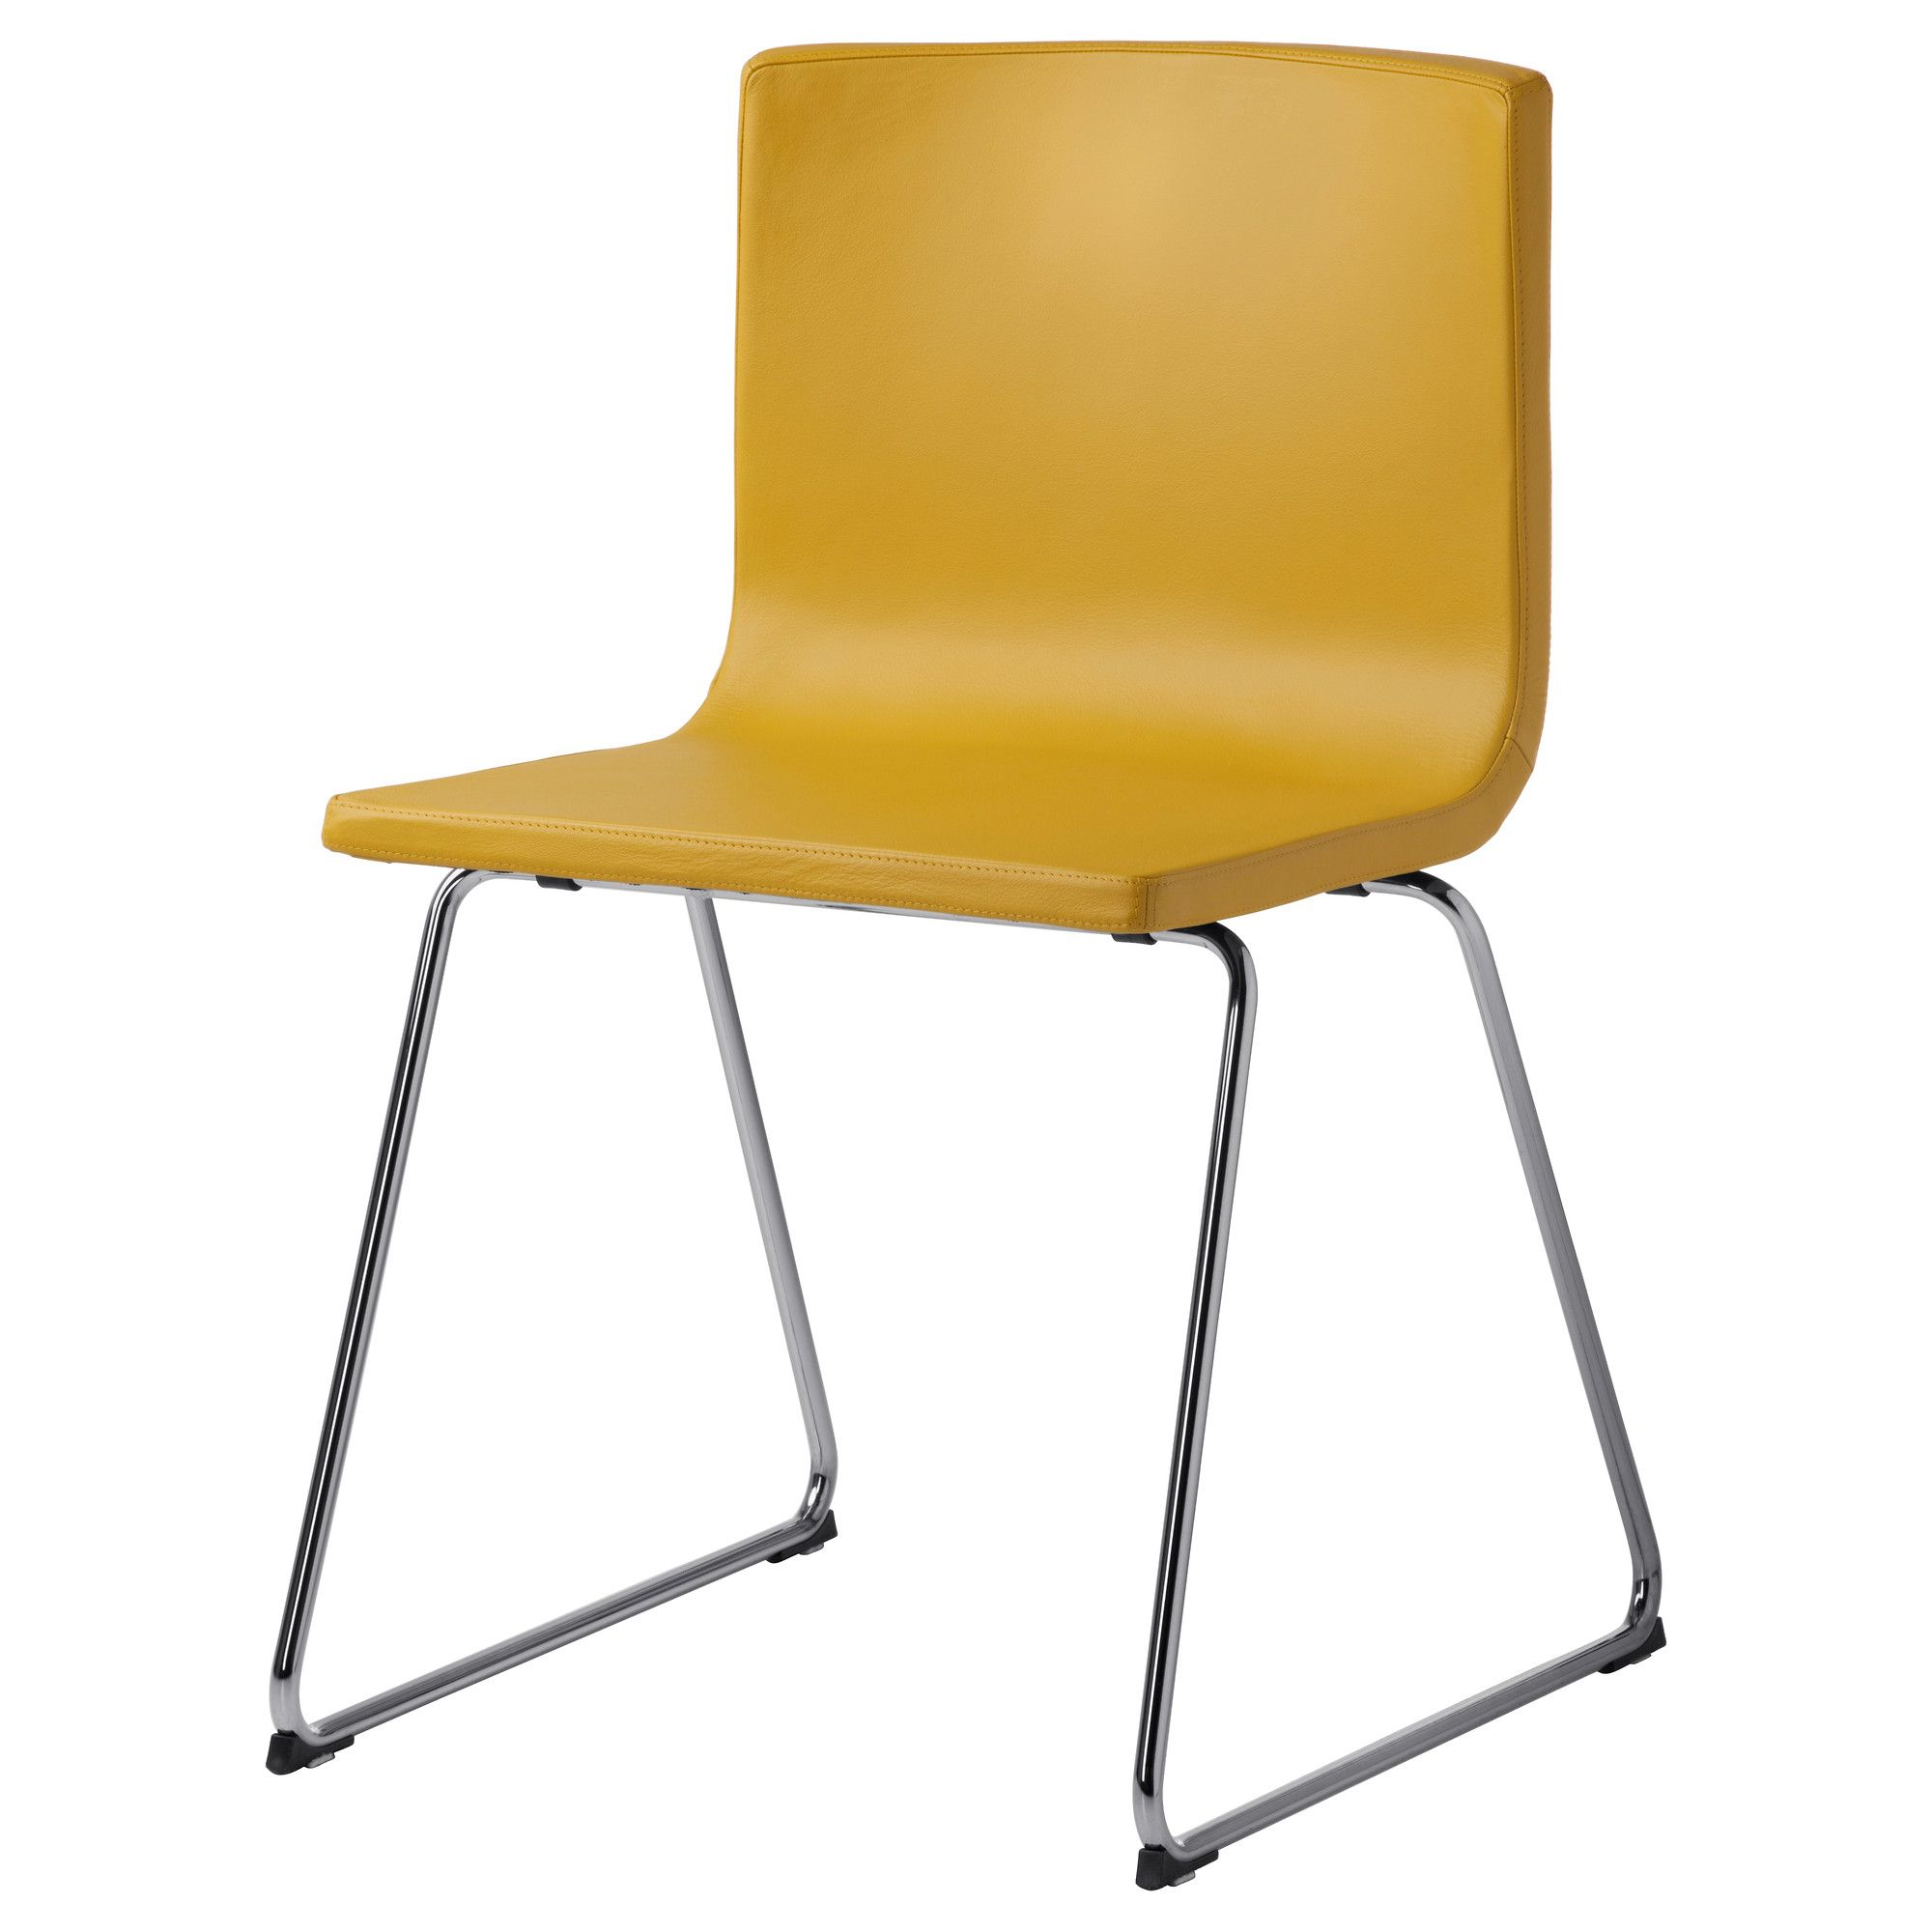 Ikea Yellow Chair Bernhard Chair In Dark Yellow (if You Want To Add Some